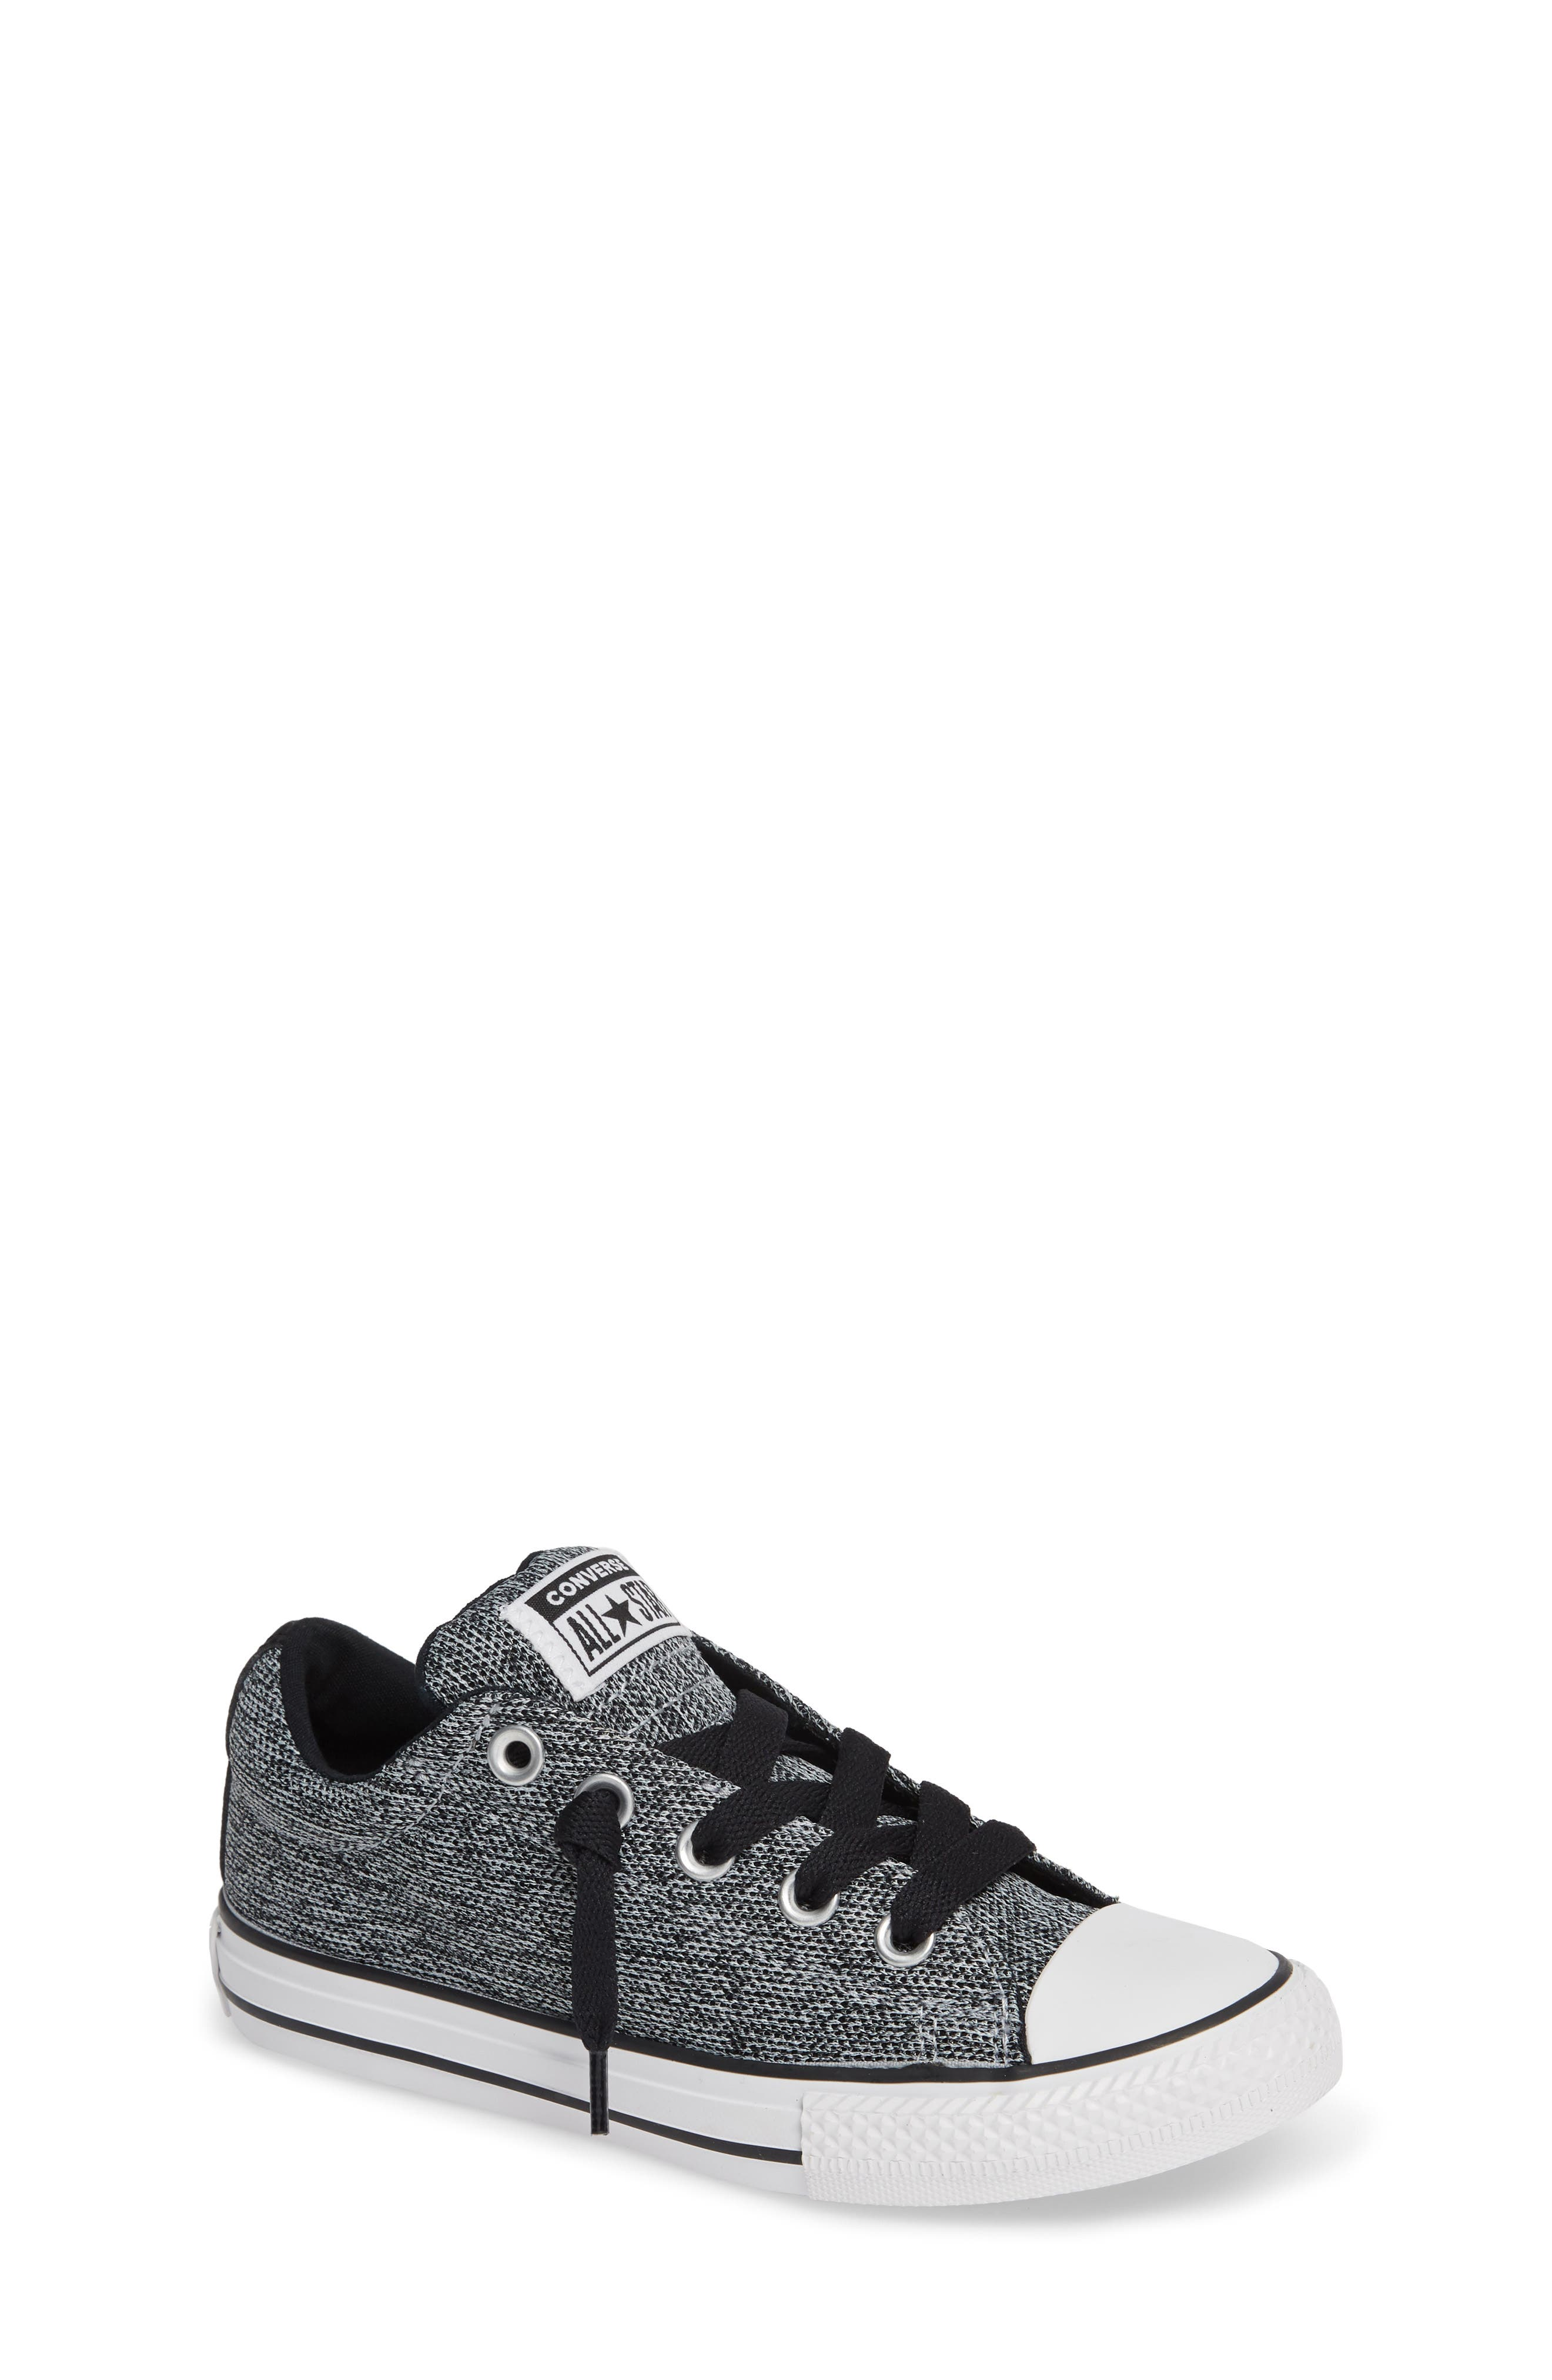 CONVERSE All Star<sup>®</sup> Graphite Textured Street Low Top Sneaker, Main, color, WOLF GREY